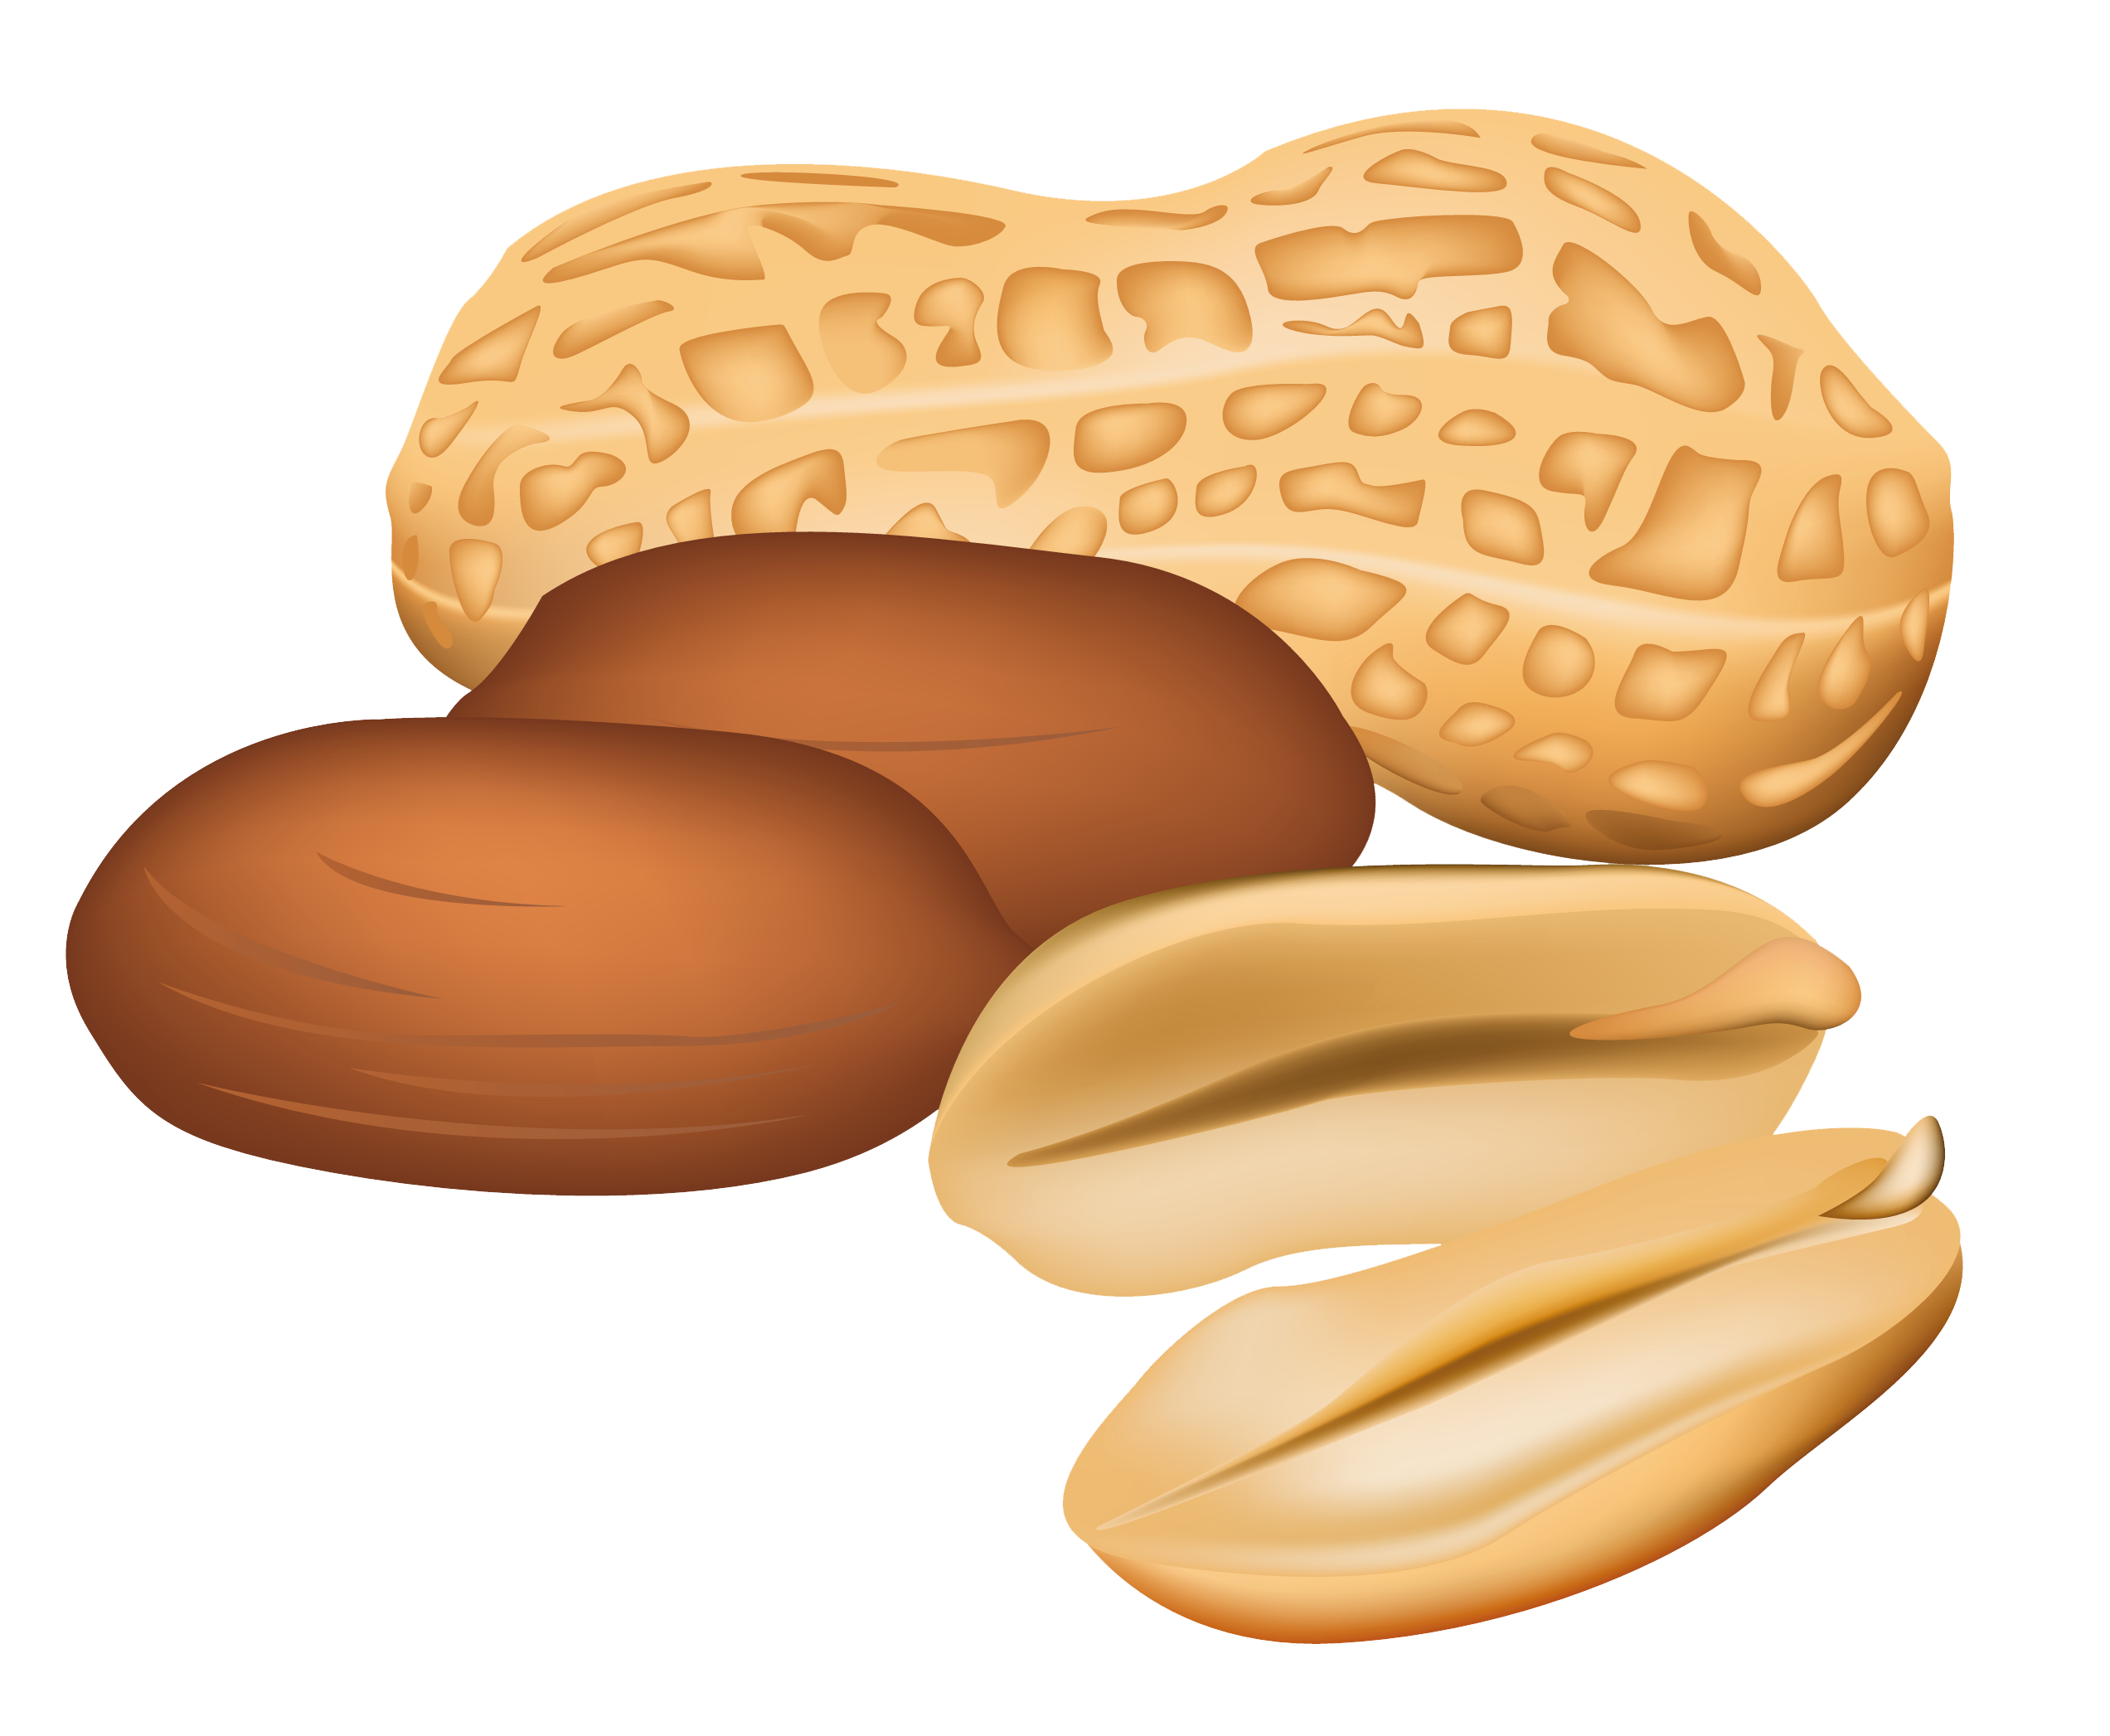 Peanuts png picture places. Lemons clipart man